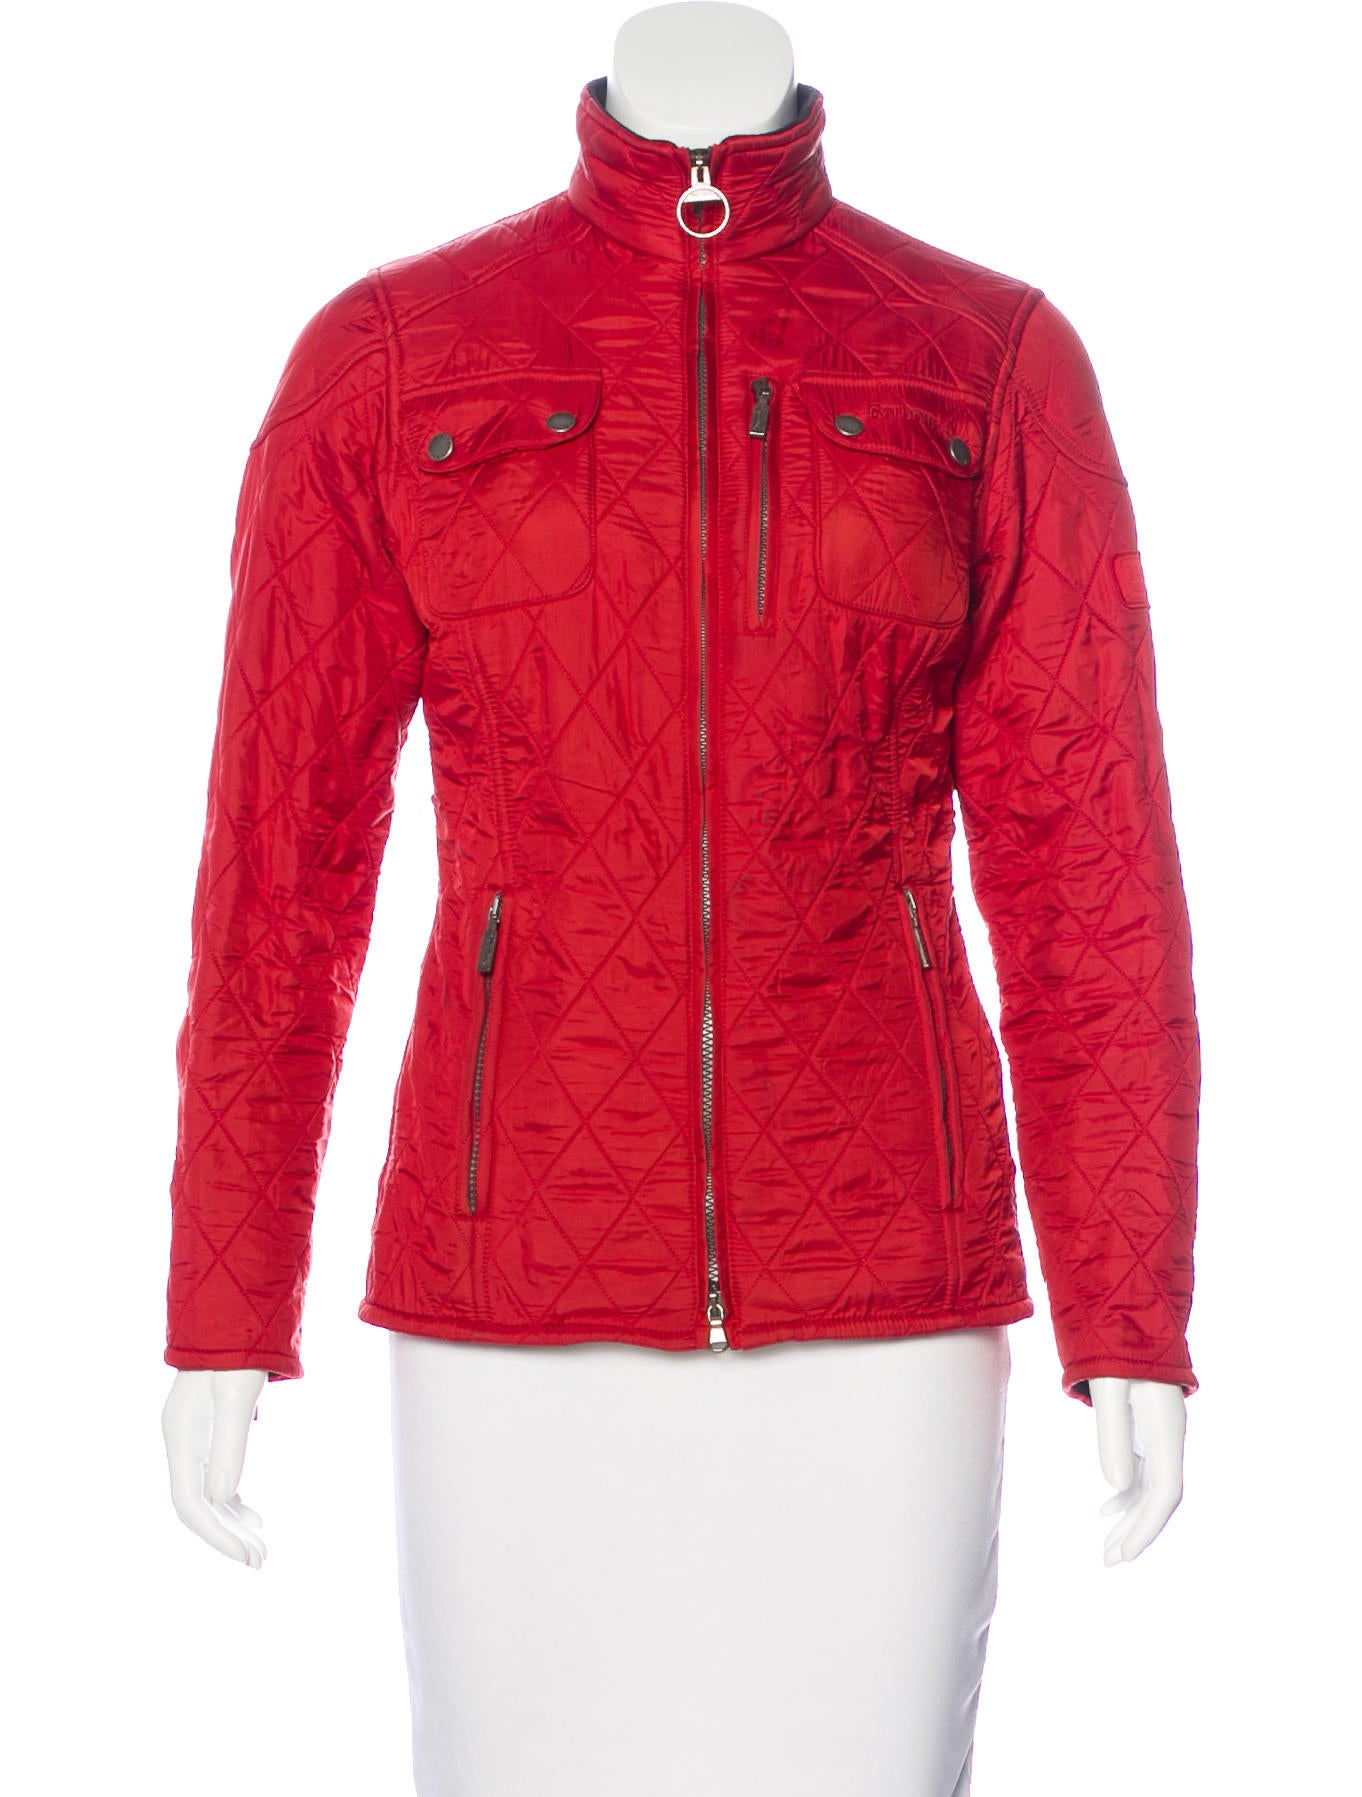 Huge savings for Quilted Sleeve Jacket